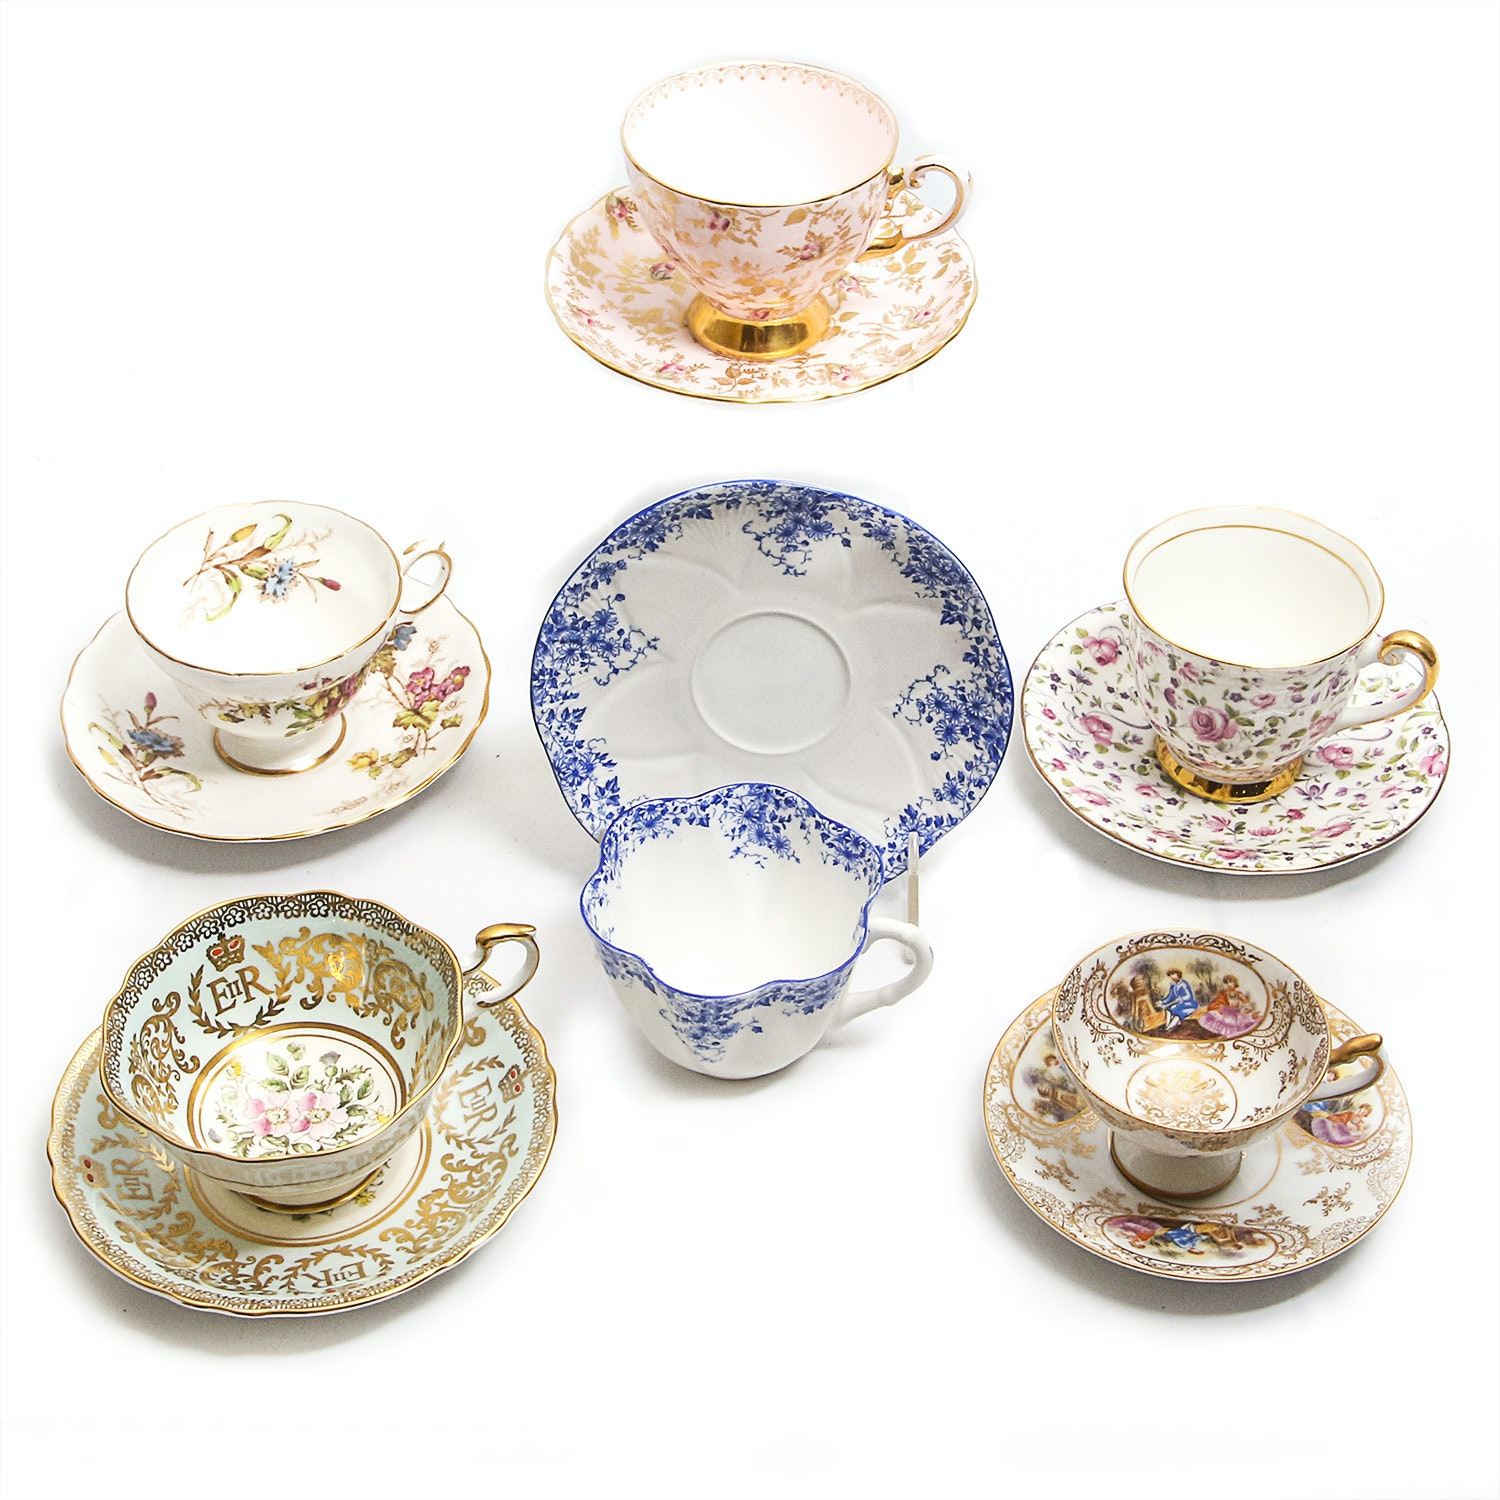 Collection of Porcelain Teacups and Saucer Pairs